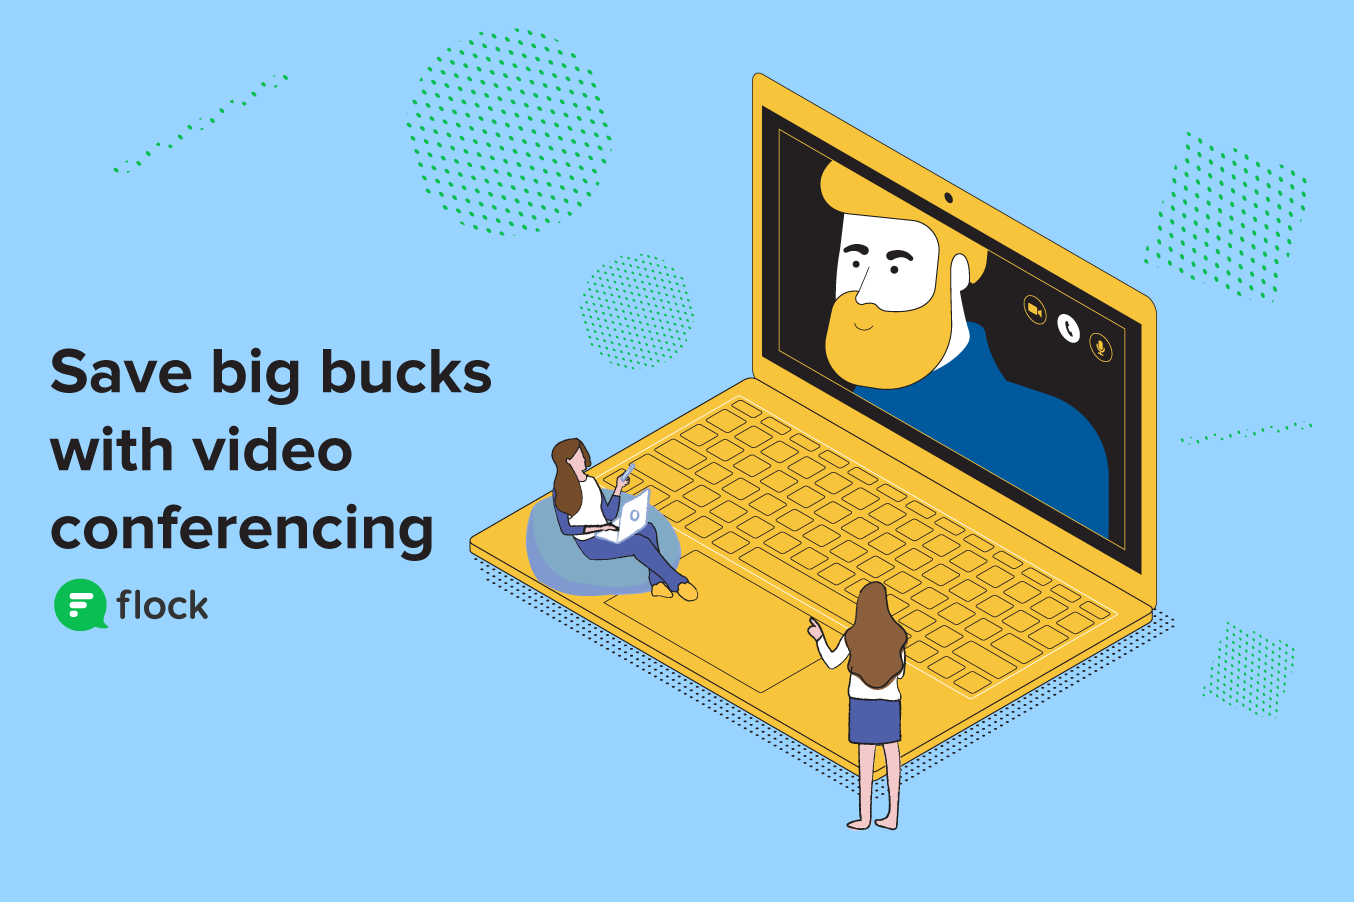 Save big bucks with video conferencing